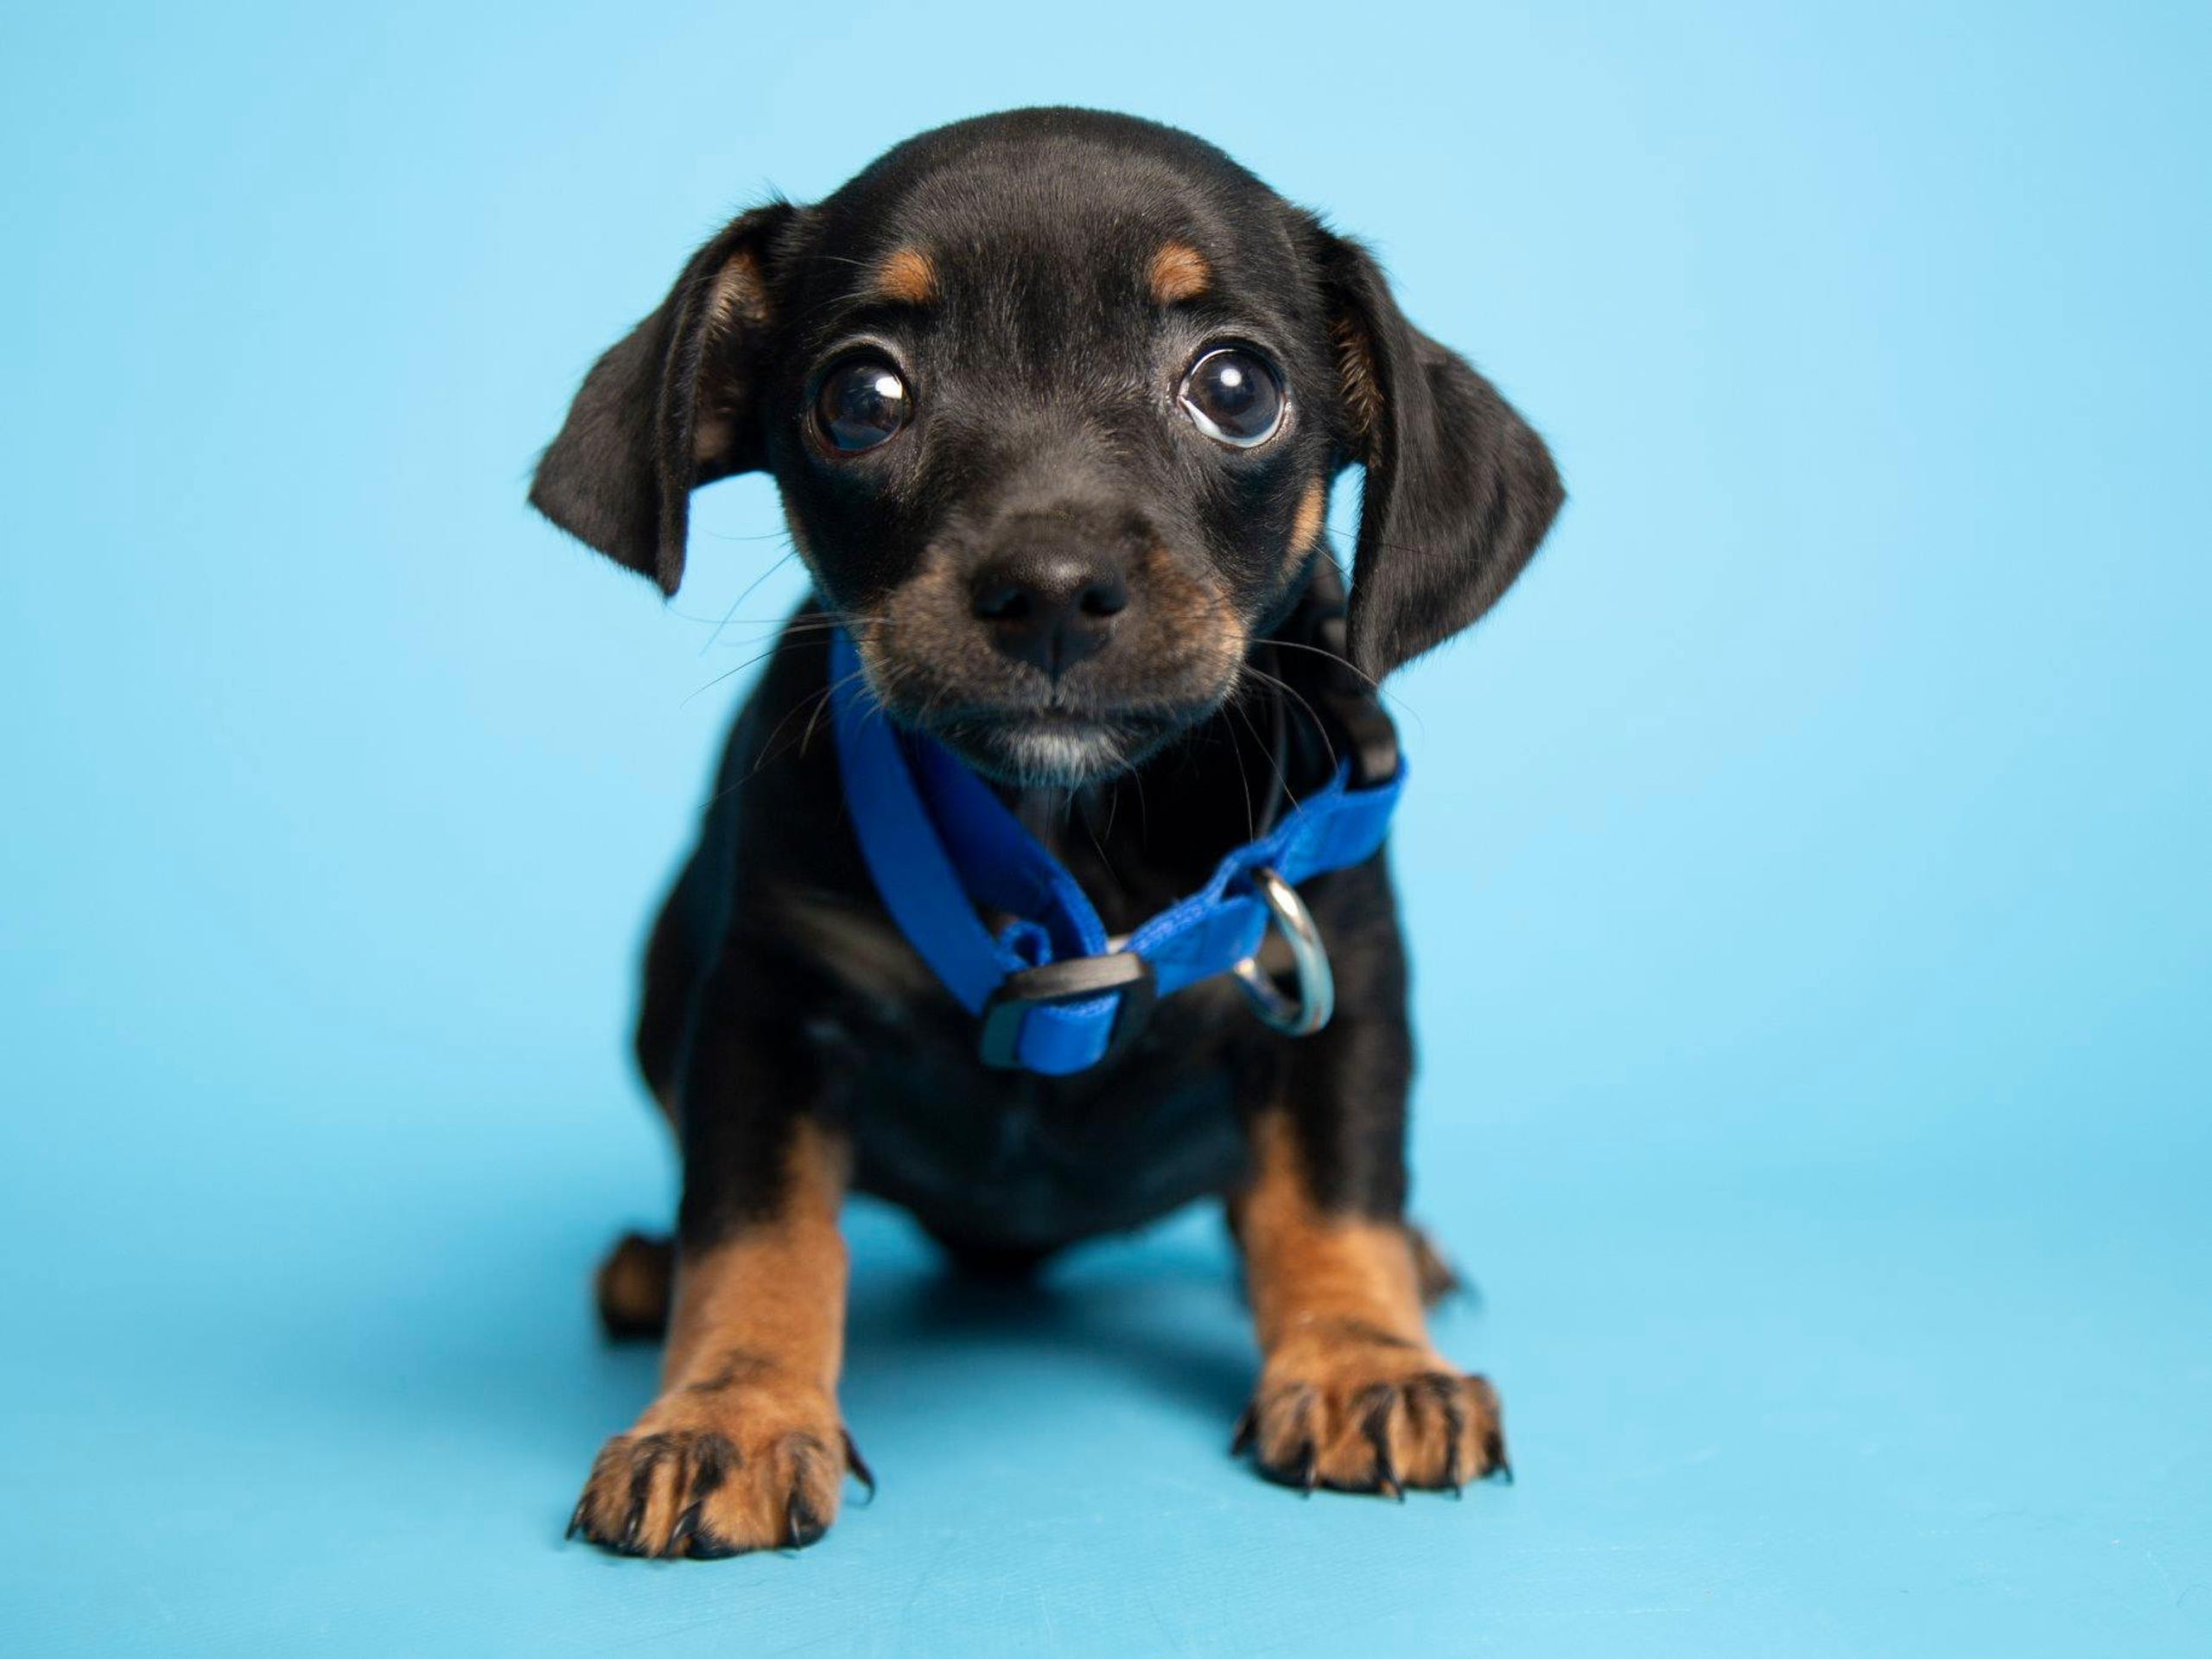 Puppies for adoption in Phoenix